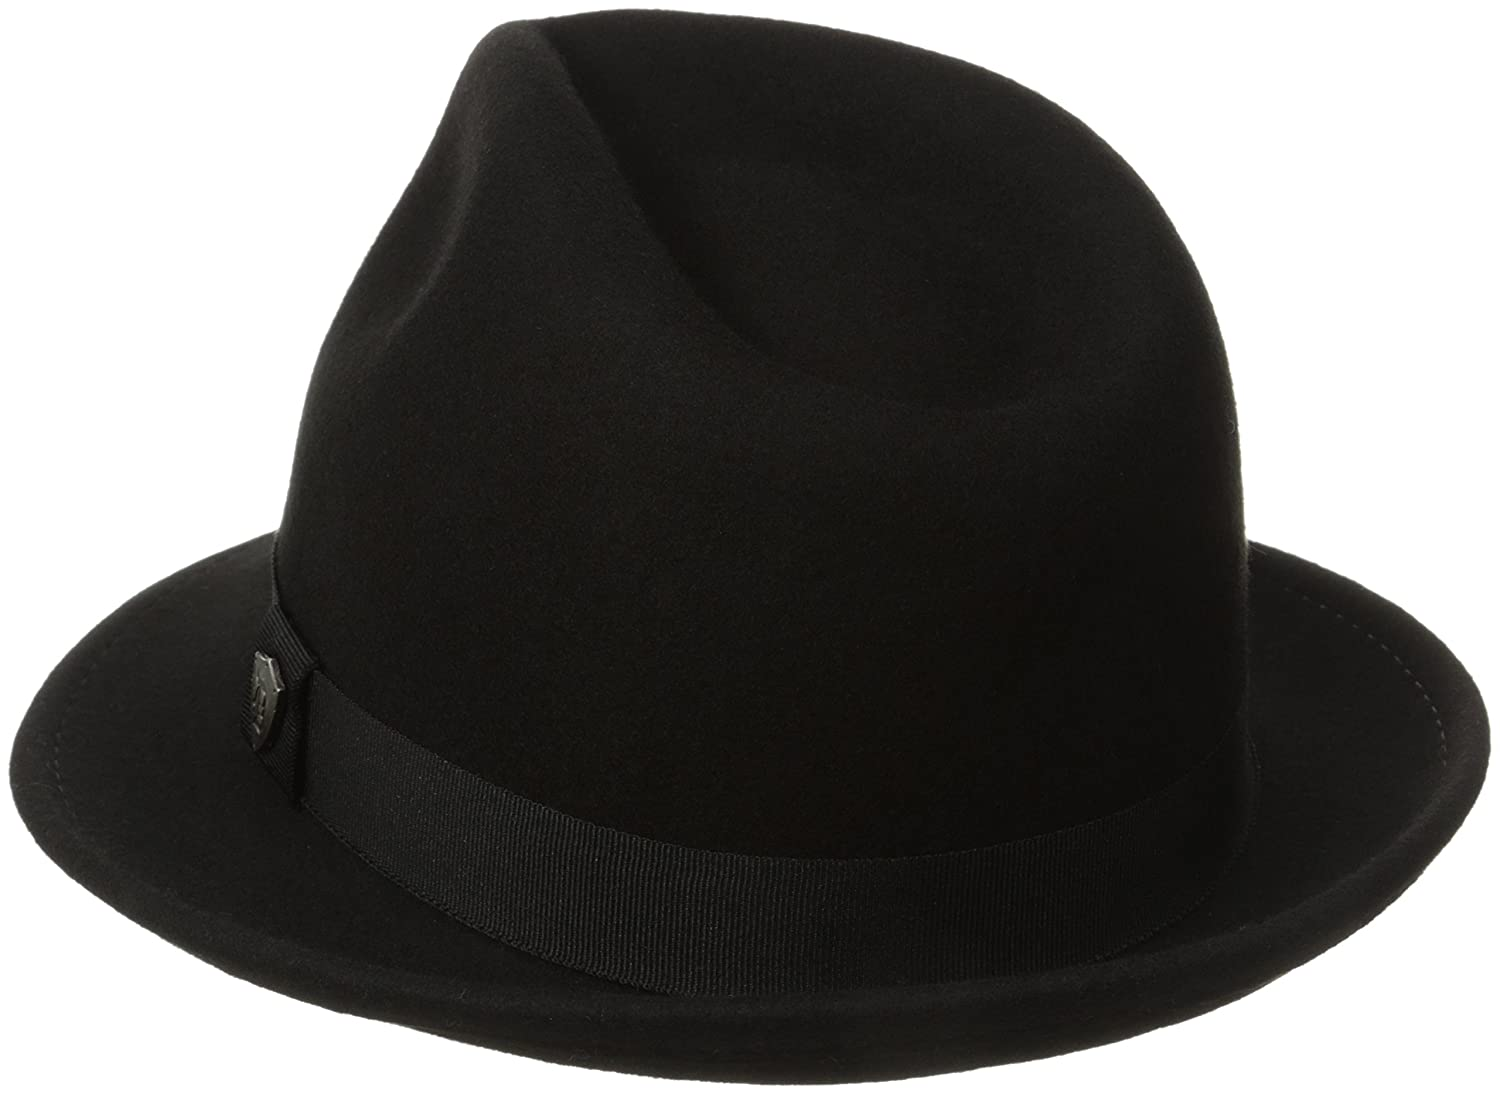 1950s Men's Hats Styles Guide Dorfman Wool Felt Hat $44.95 AT vintagedancer.com